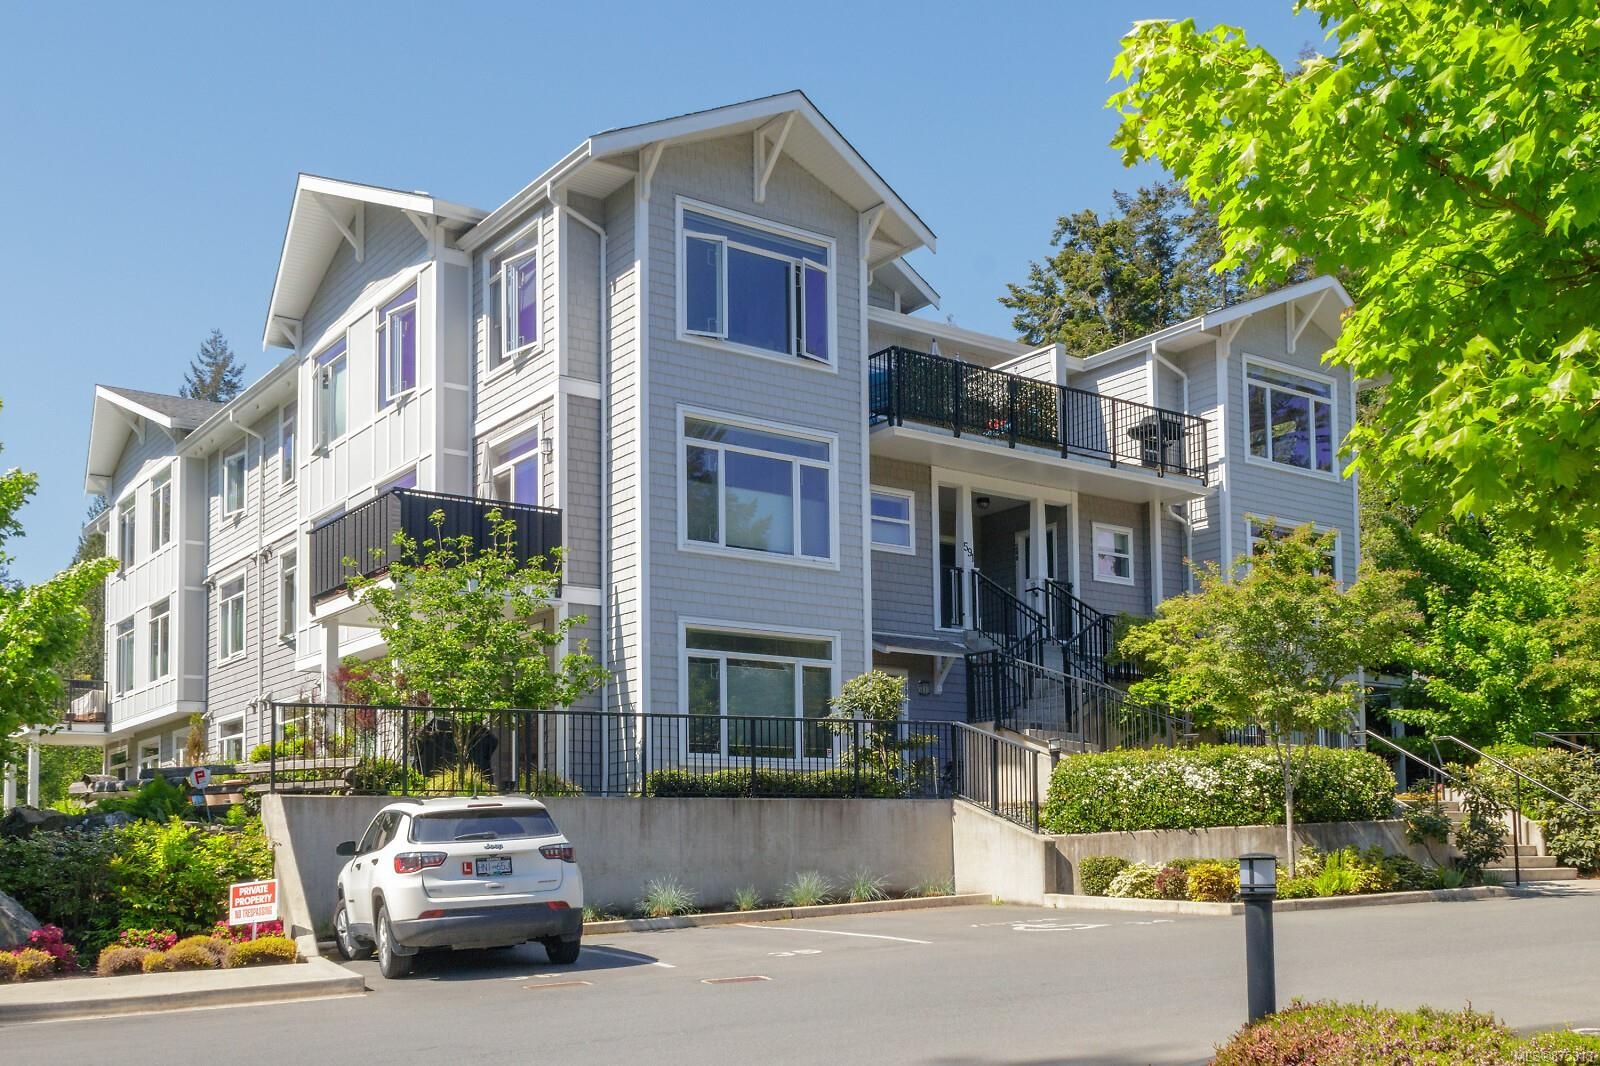 Main Photo: 300 591 Latoria Rd in : Co Olympic View Condo for sale (Colwood)  : MLS®# 875313